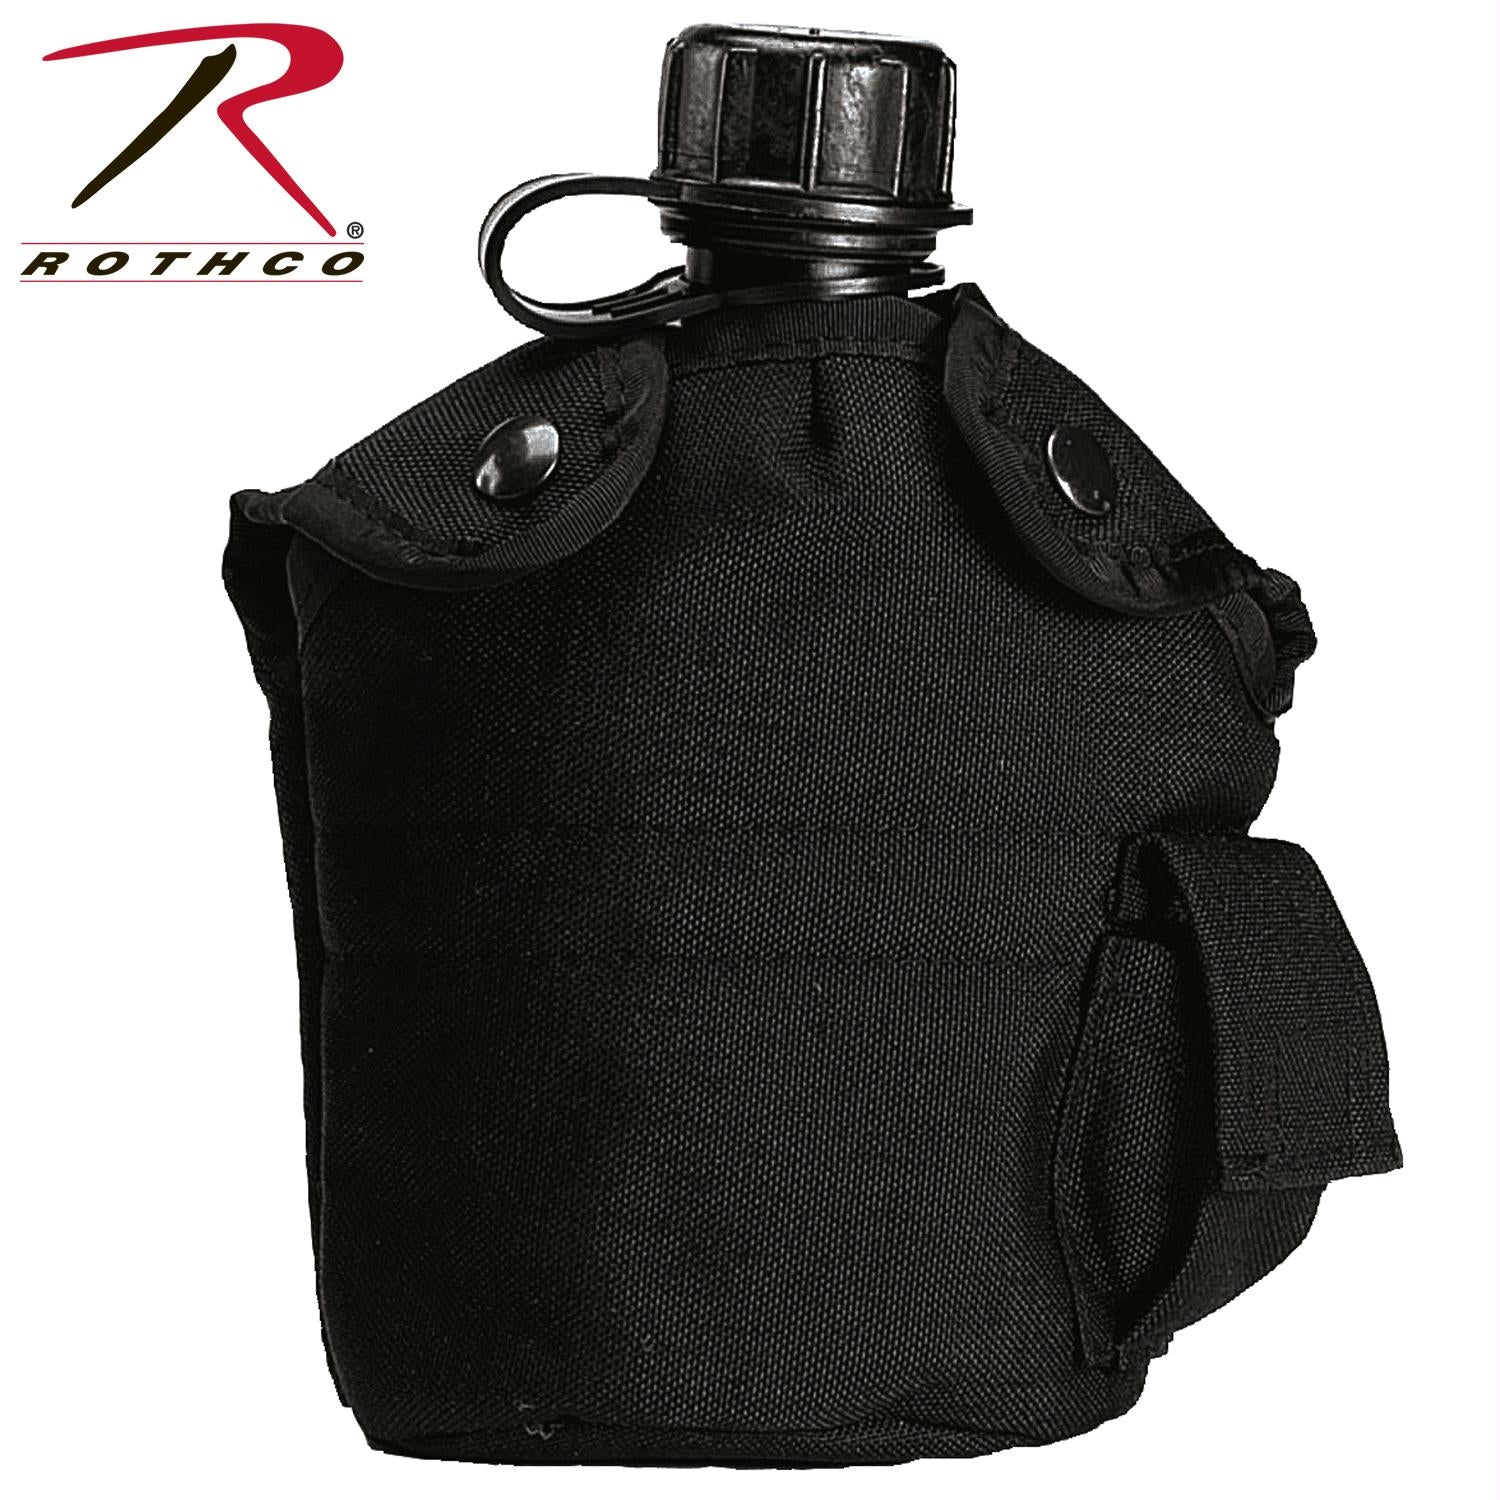 Rothco G.I. Type Enhanced Nylon 1qt. Canteen Cover - Black